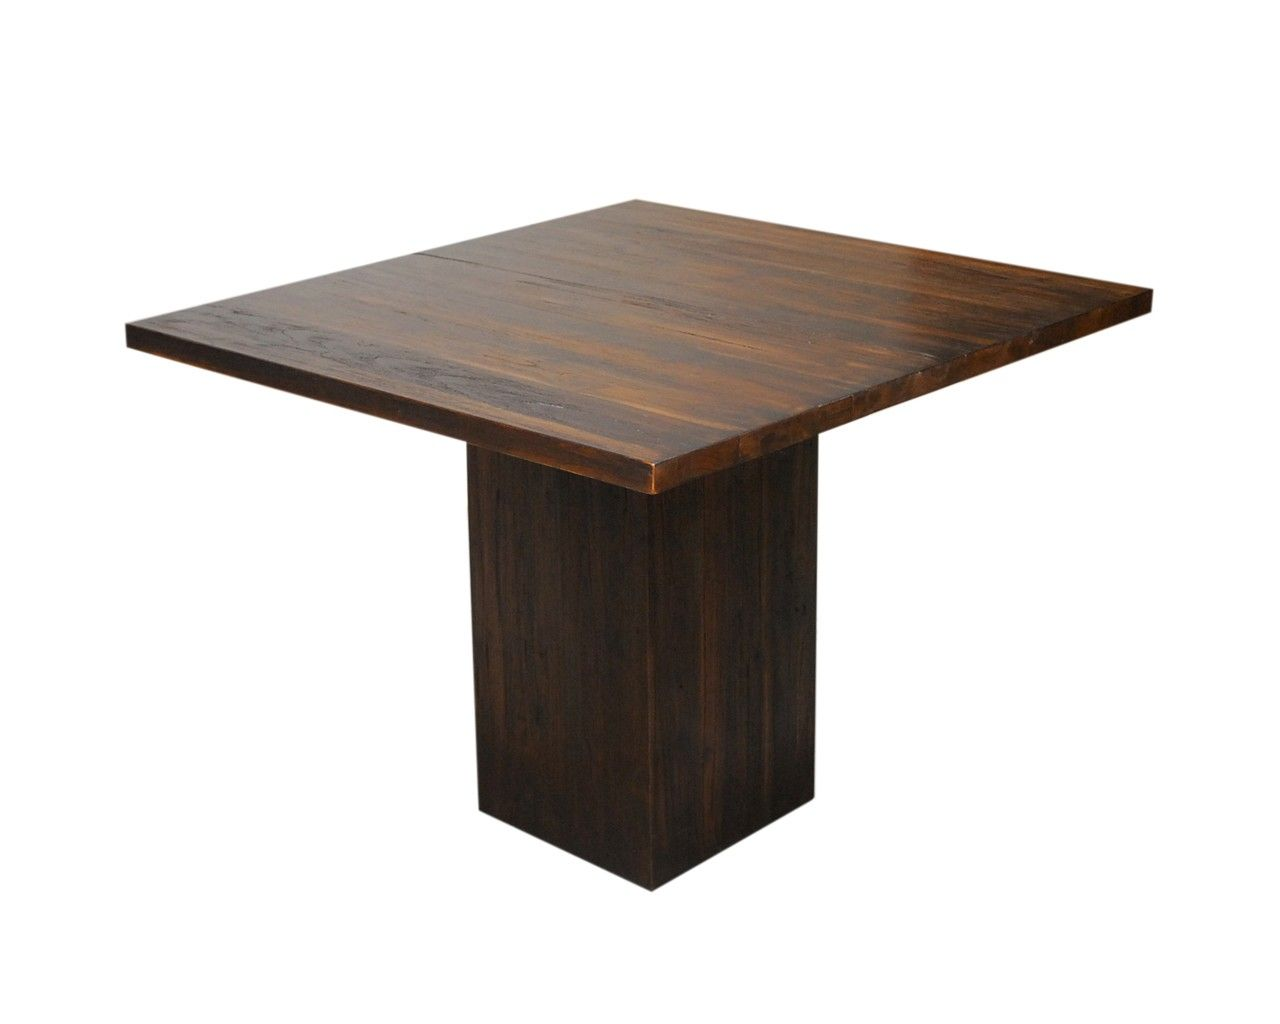 Square Wood Dining Tables dining-room : dark wood square table contemporary teak dining